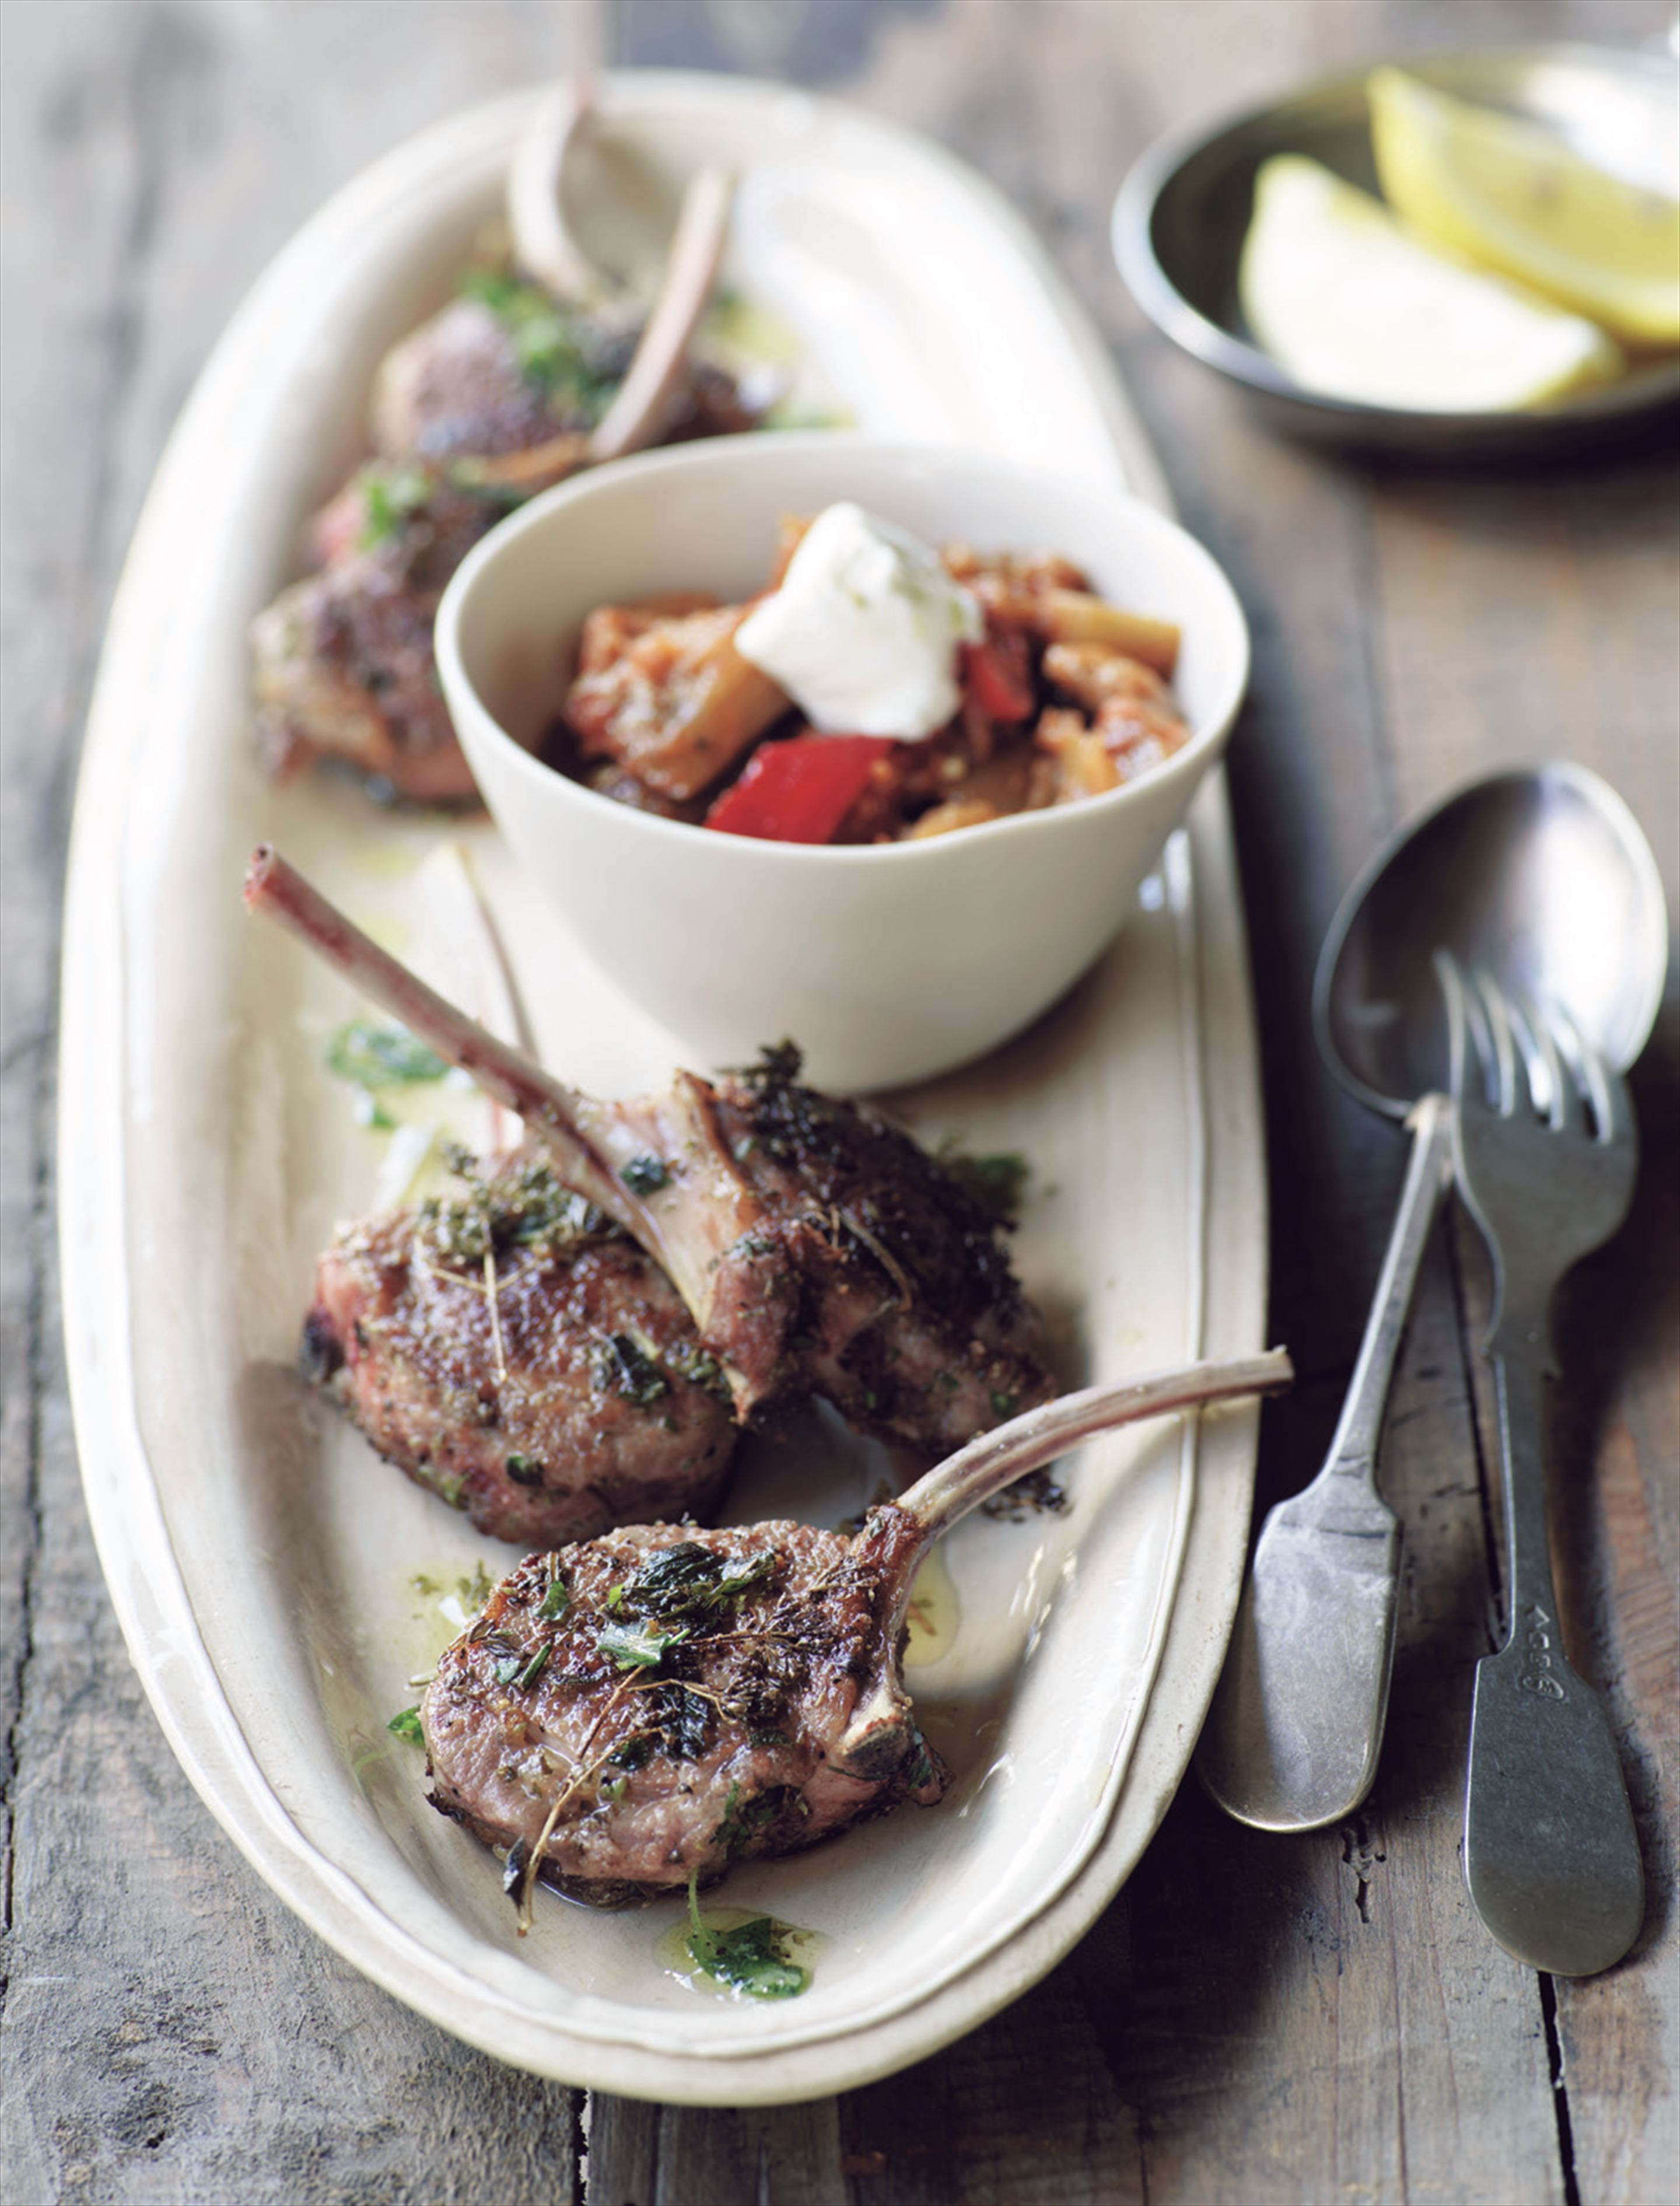 Grilled lamb cutlets with mountain herbs